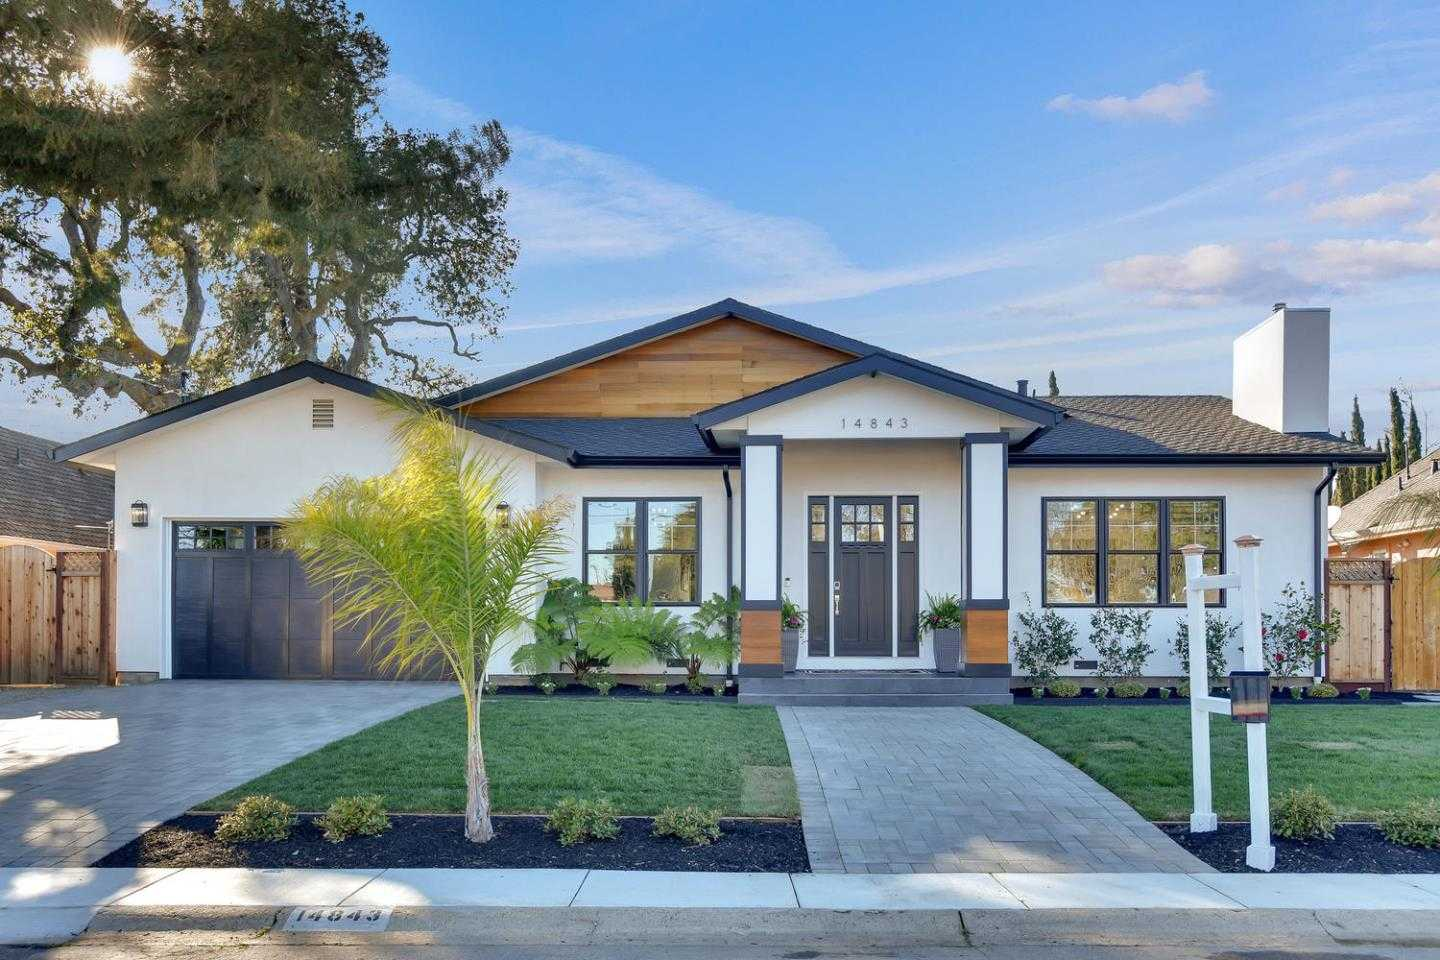 $2,599,000 - 5Br/4Ba -  for Sale in San Jose